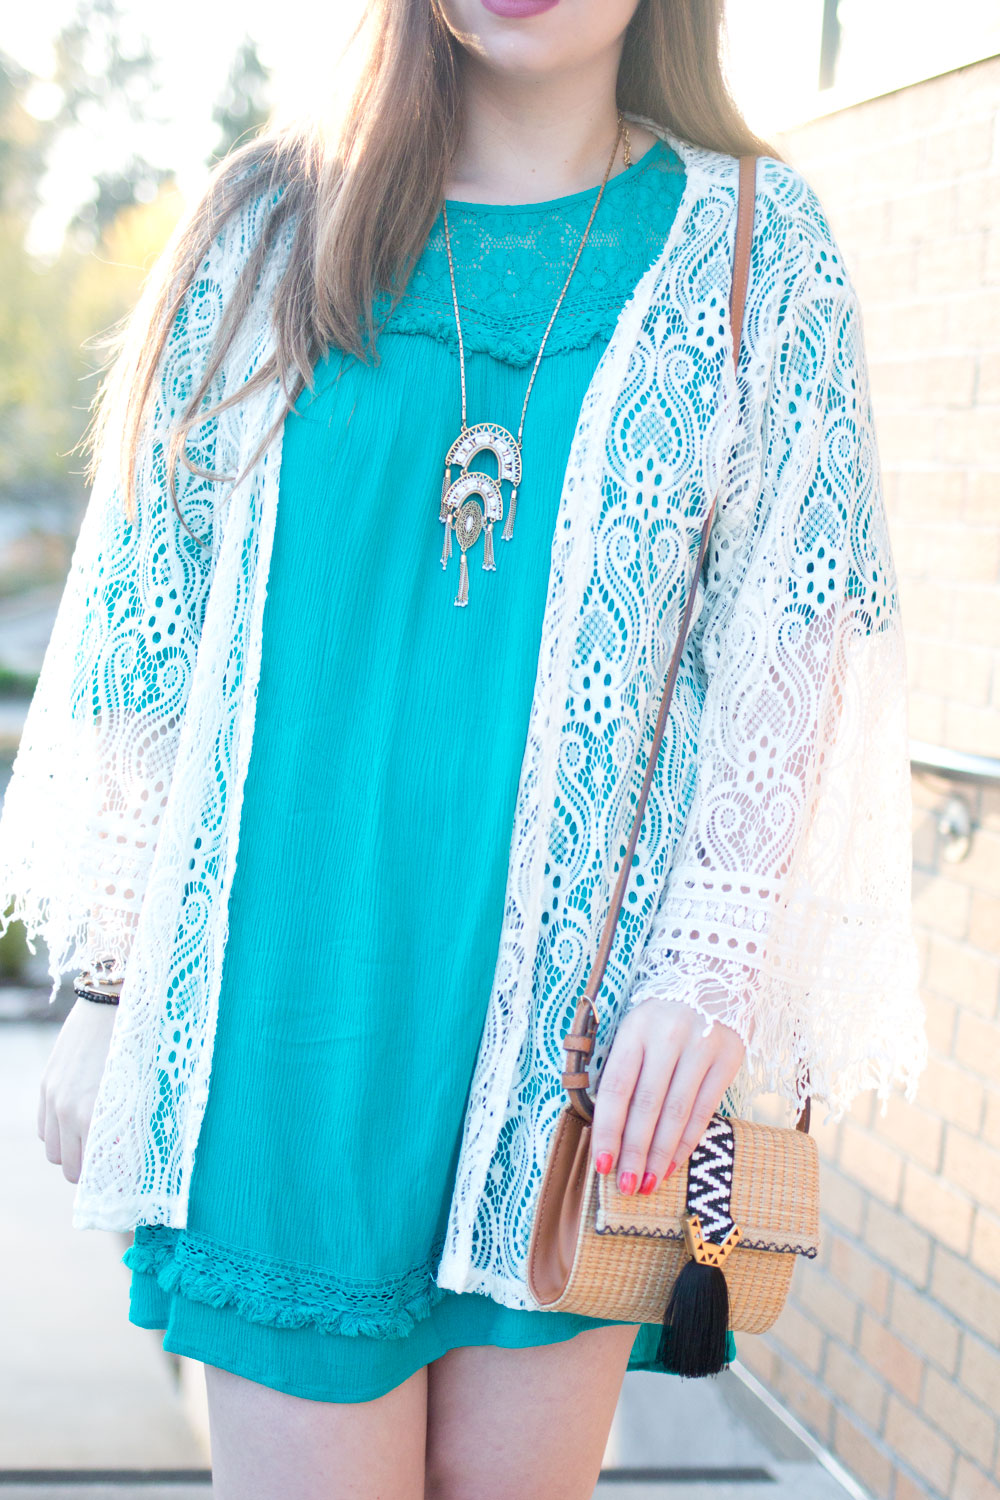 One Dress Three Ways Bohemian Outfit with Stella & Dot Jewelry & Bag // Hello Rigby Seattle Fashion & Style Blog